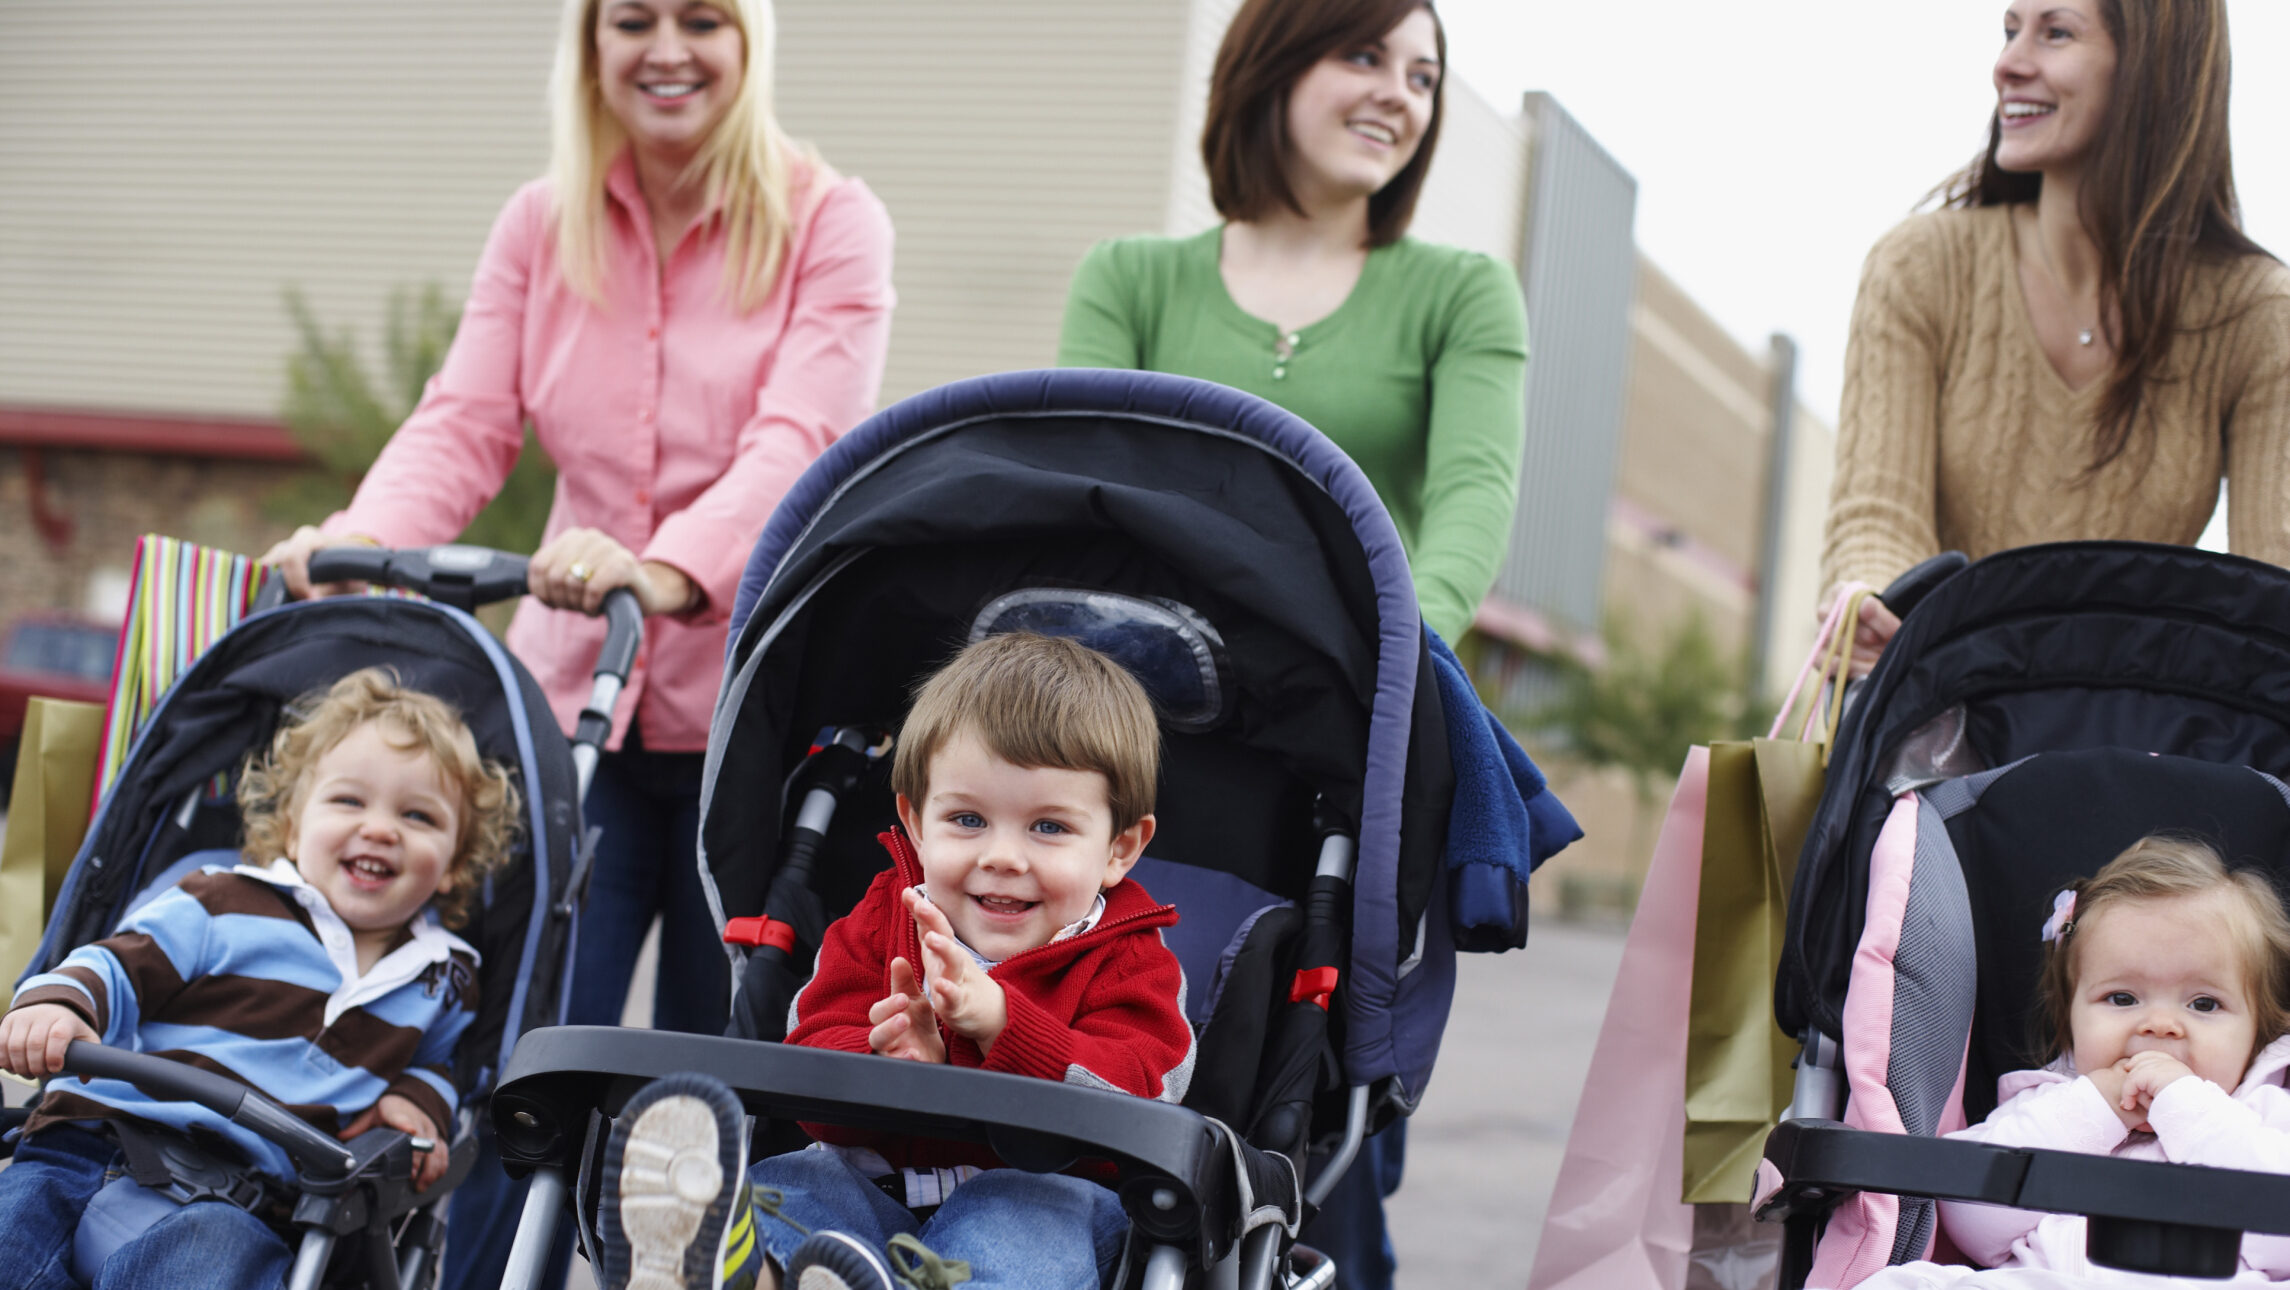 Moms walking in the city with babies in strollers.